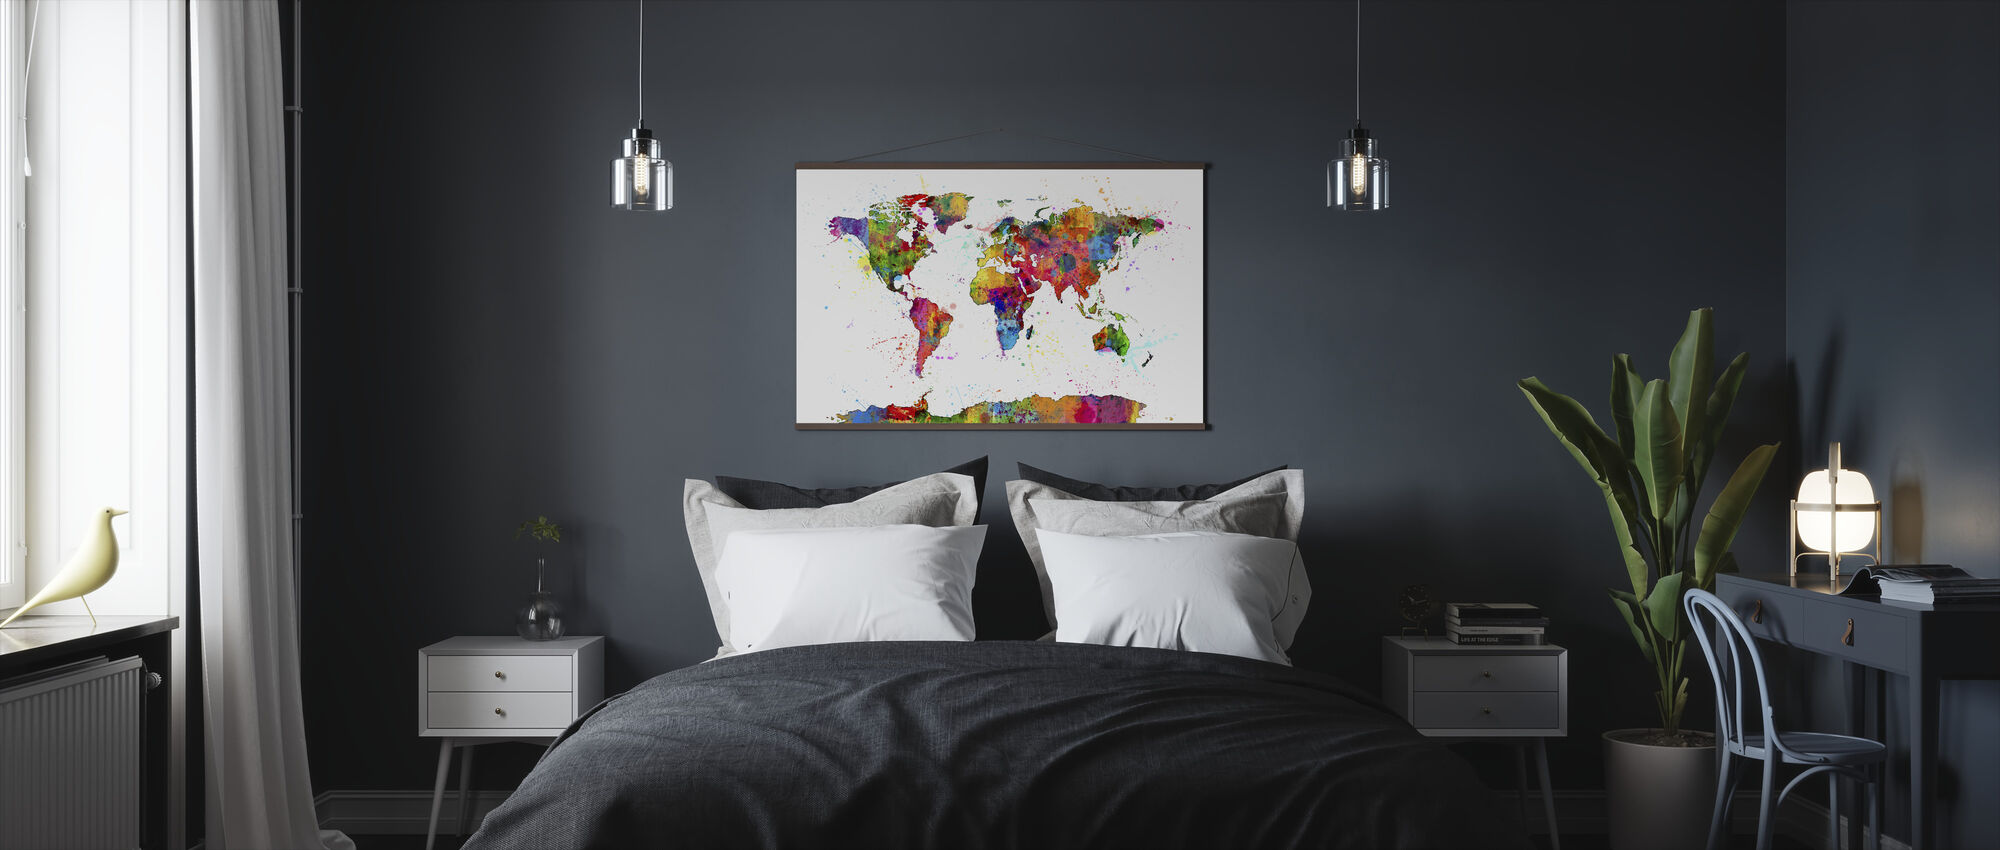 Paint Splashes Map 2 - Poster - Bedroom